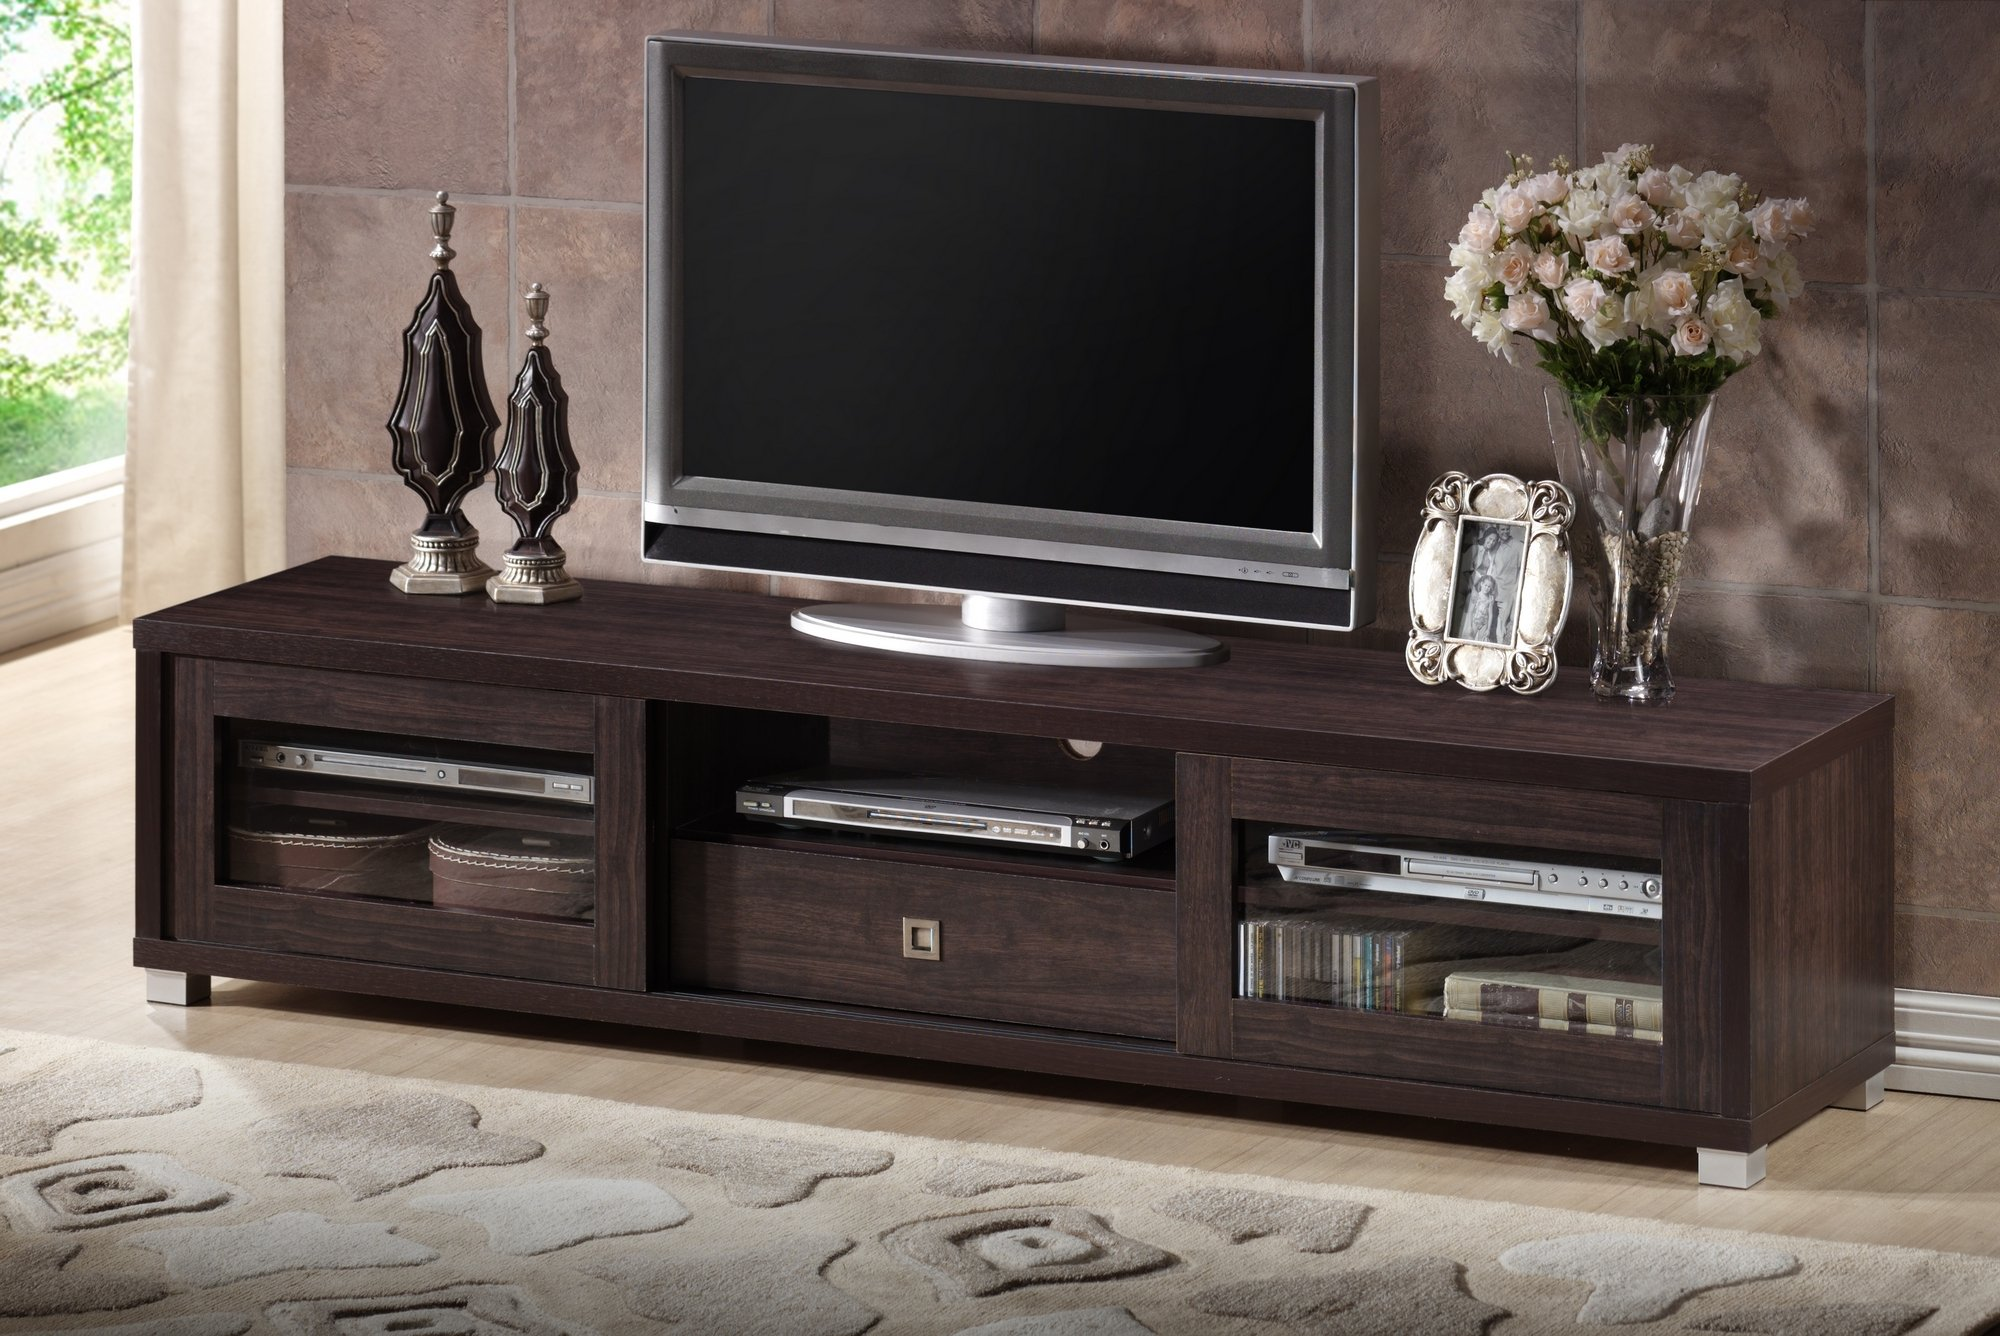 Wholesale Interiors Baxton Studio Beasley TV Cabinet with 2 Sliding Doors and Drawer, 70'', Dark Brown